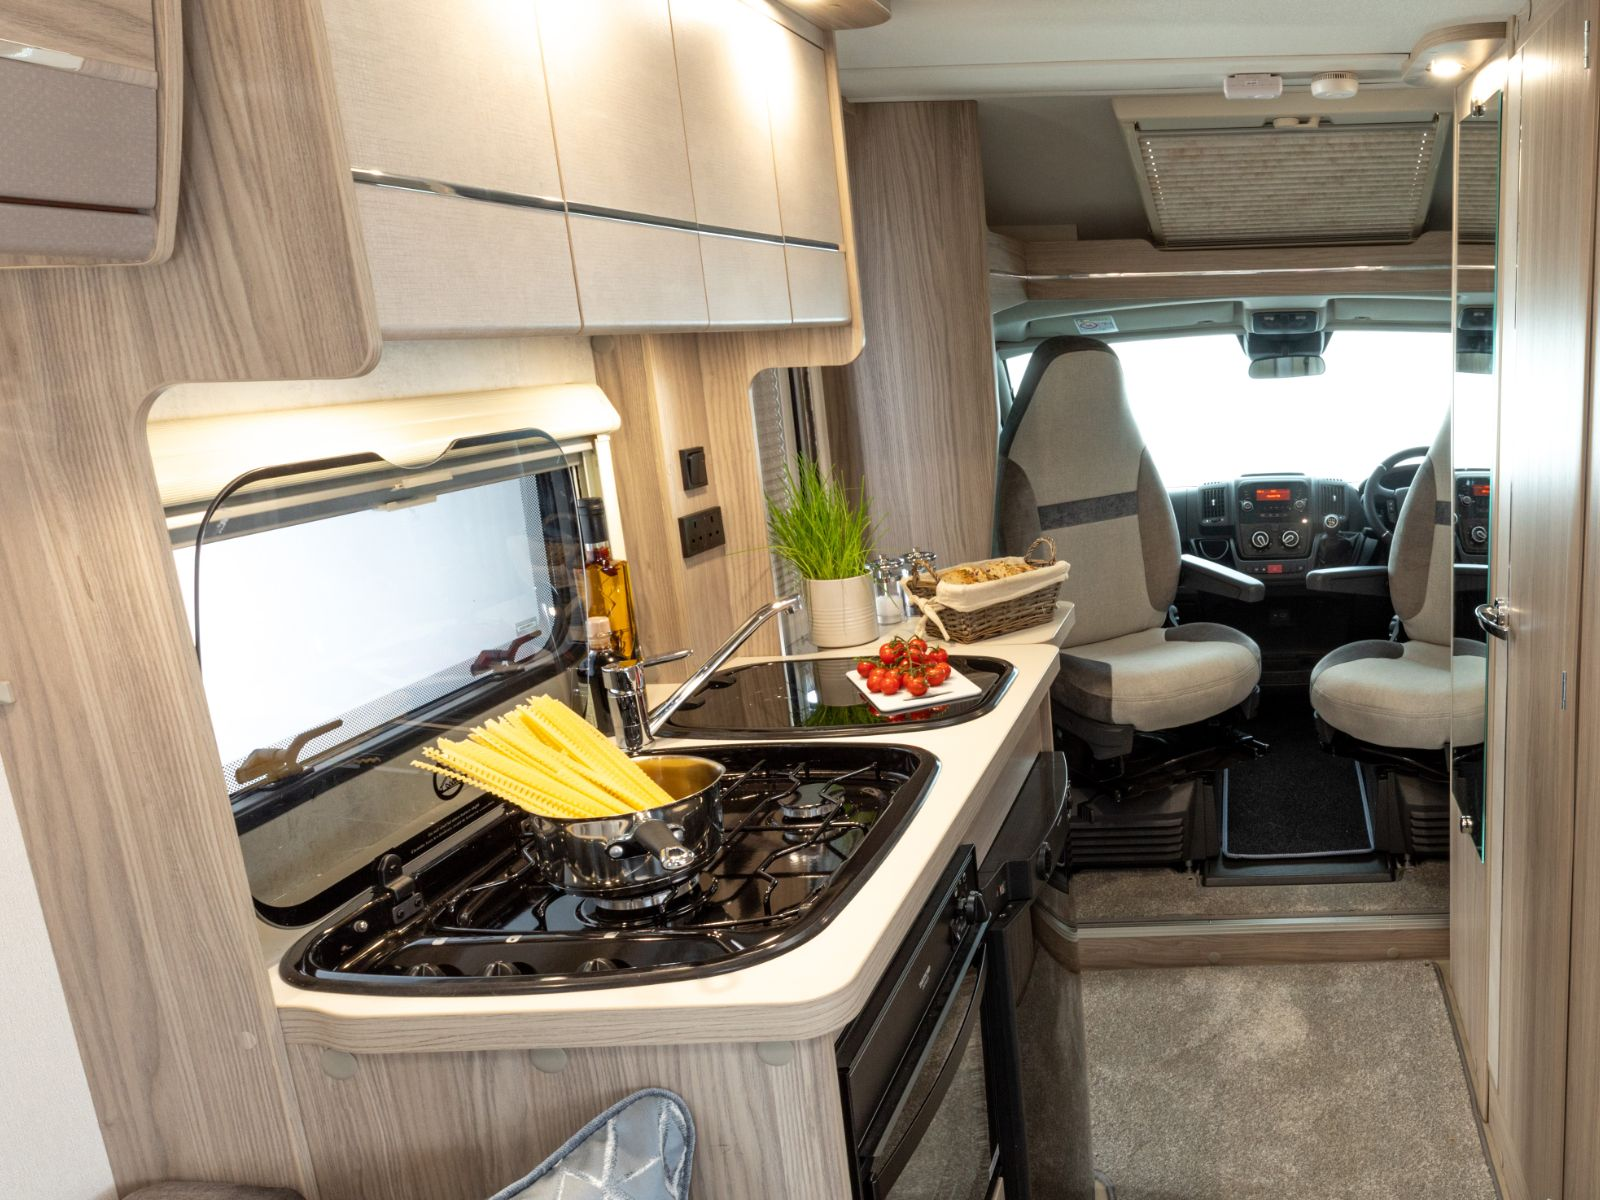 Kitchen layout with overhead storage and bread resting on the stove top with a view of the passenger seat'